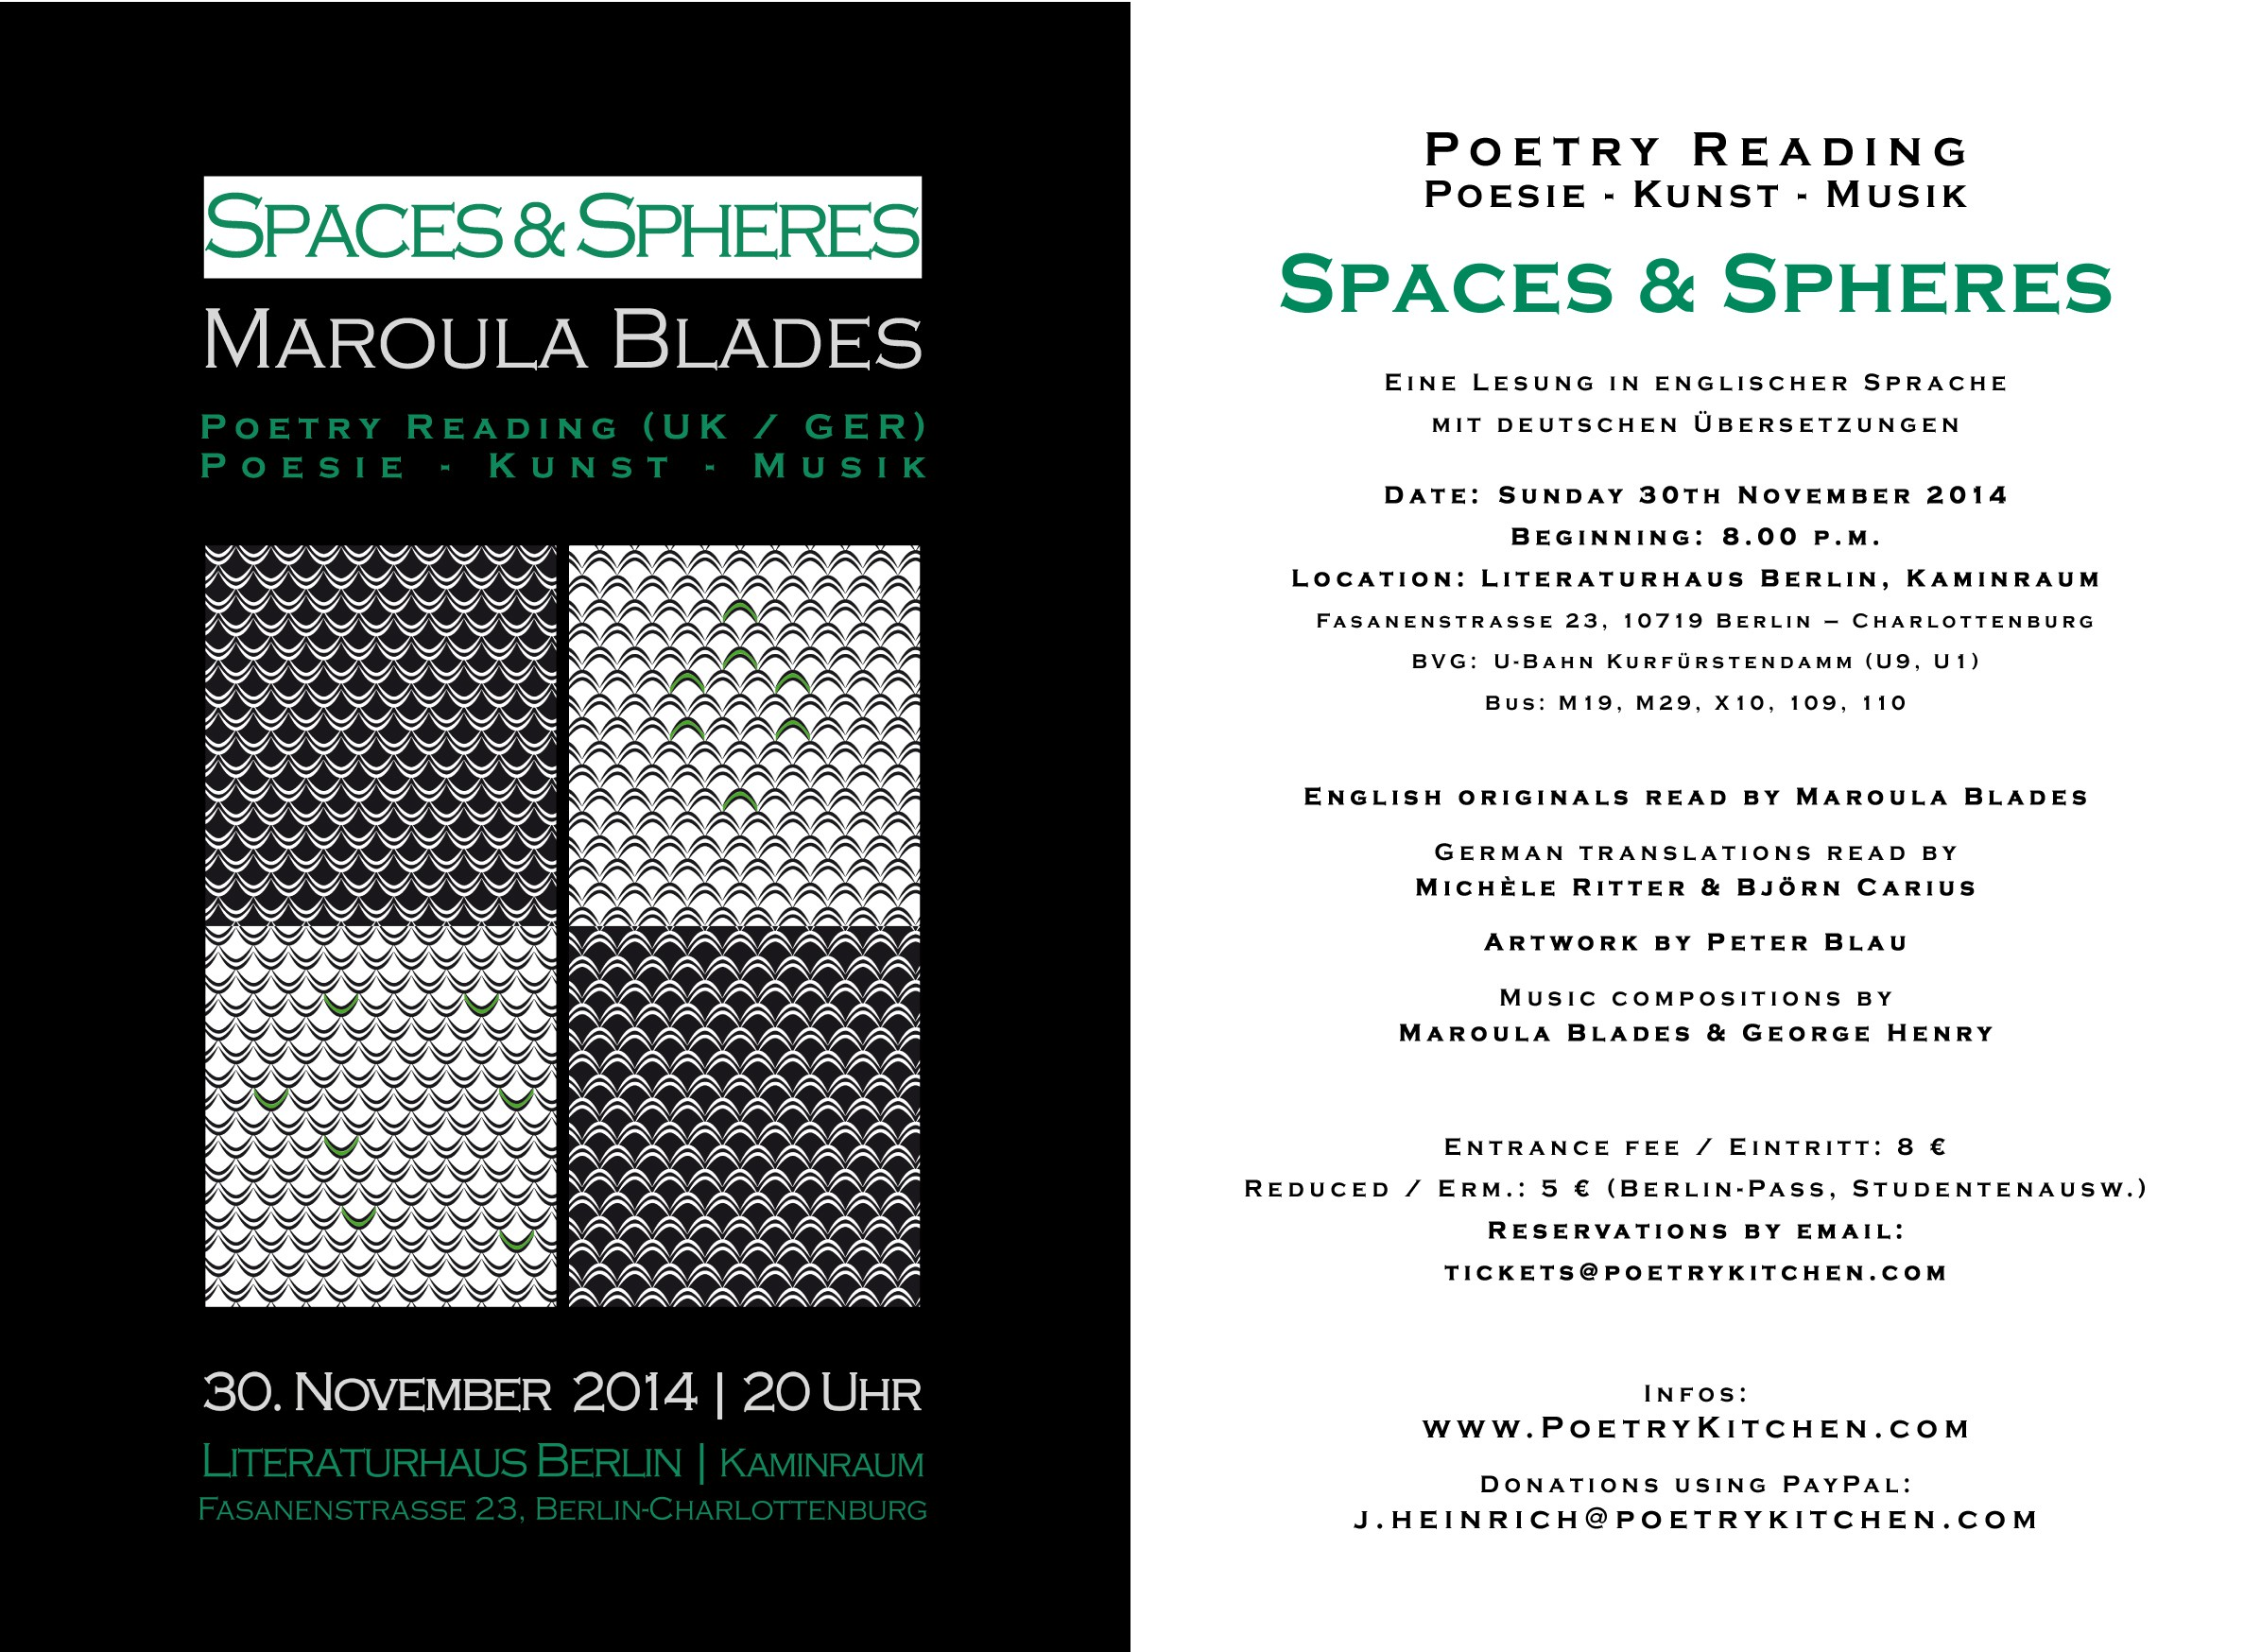 email flyer - Maroula Blades - SPACES & SPHERES